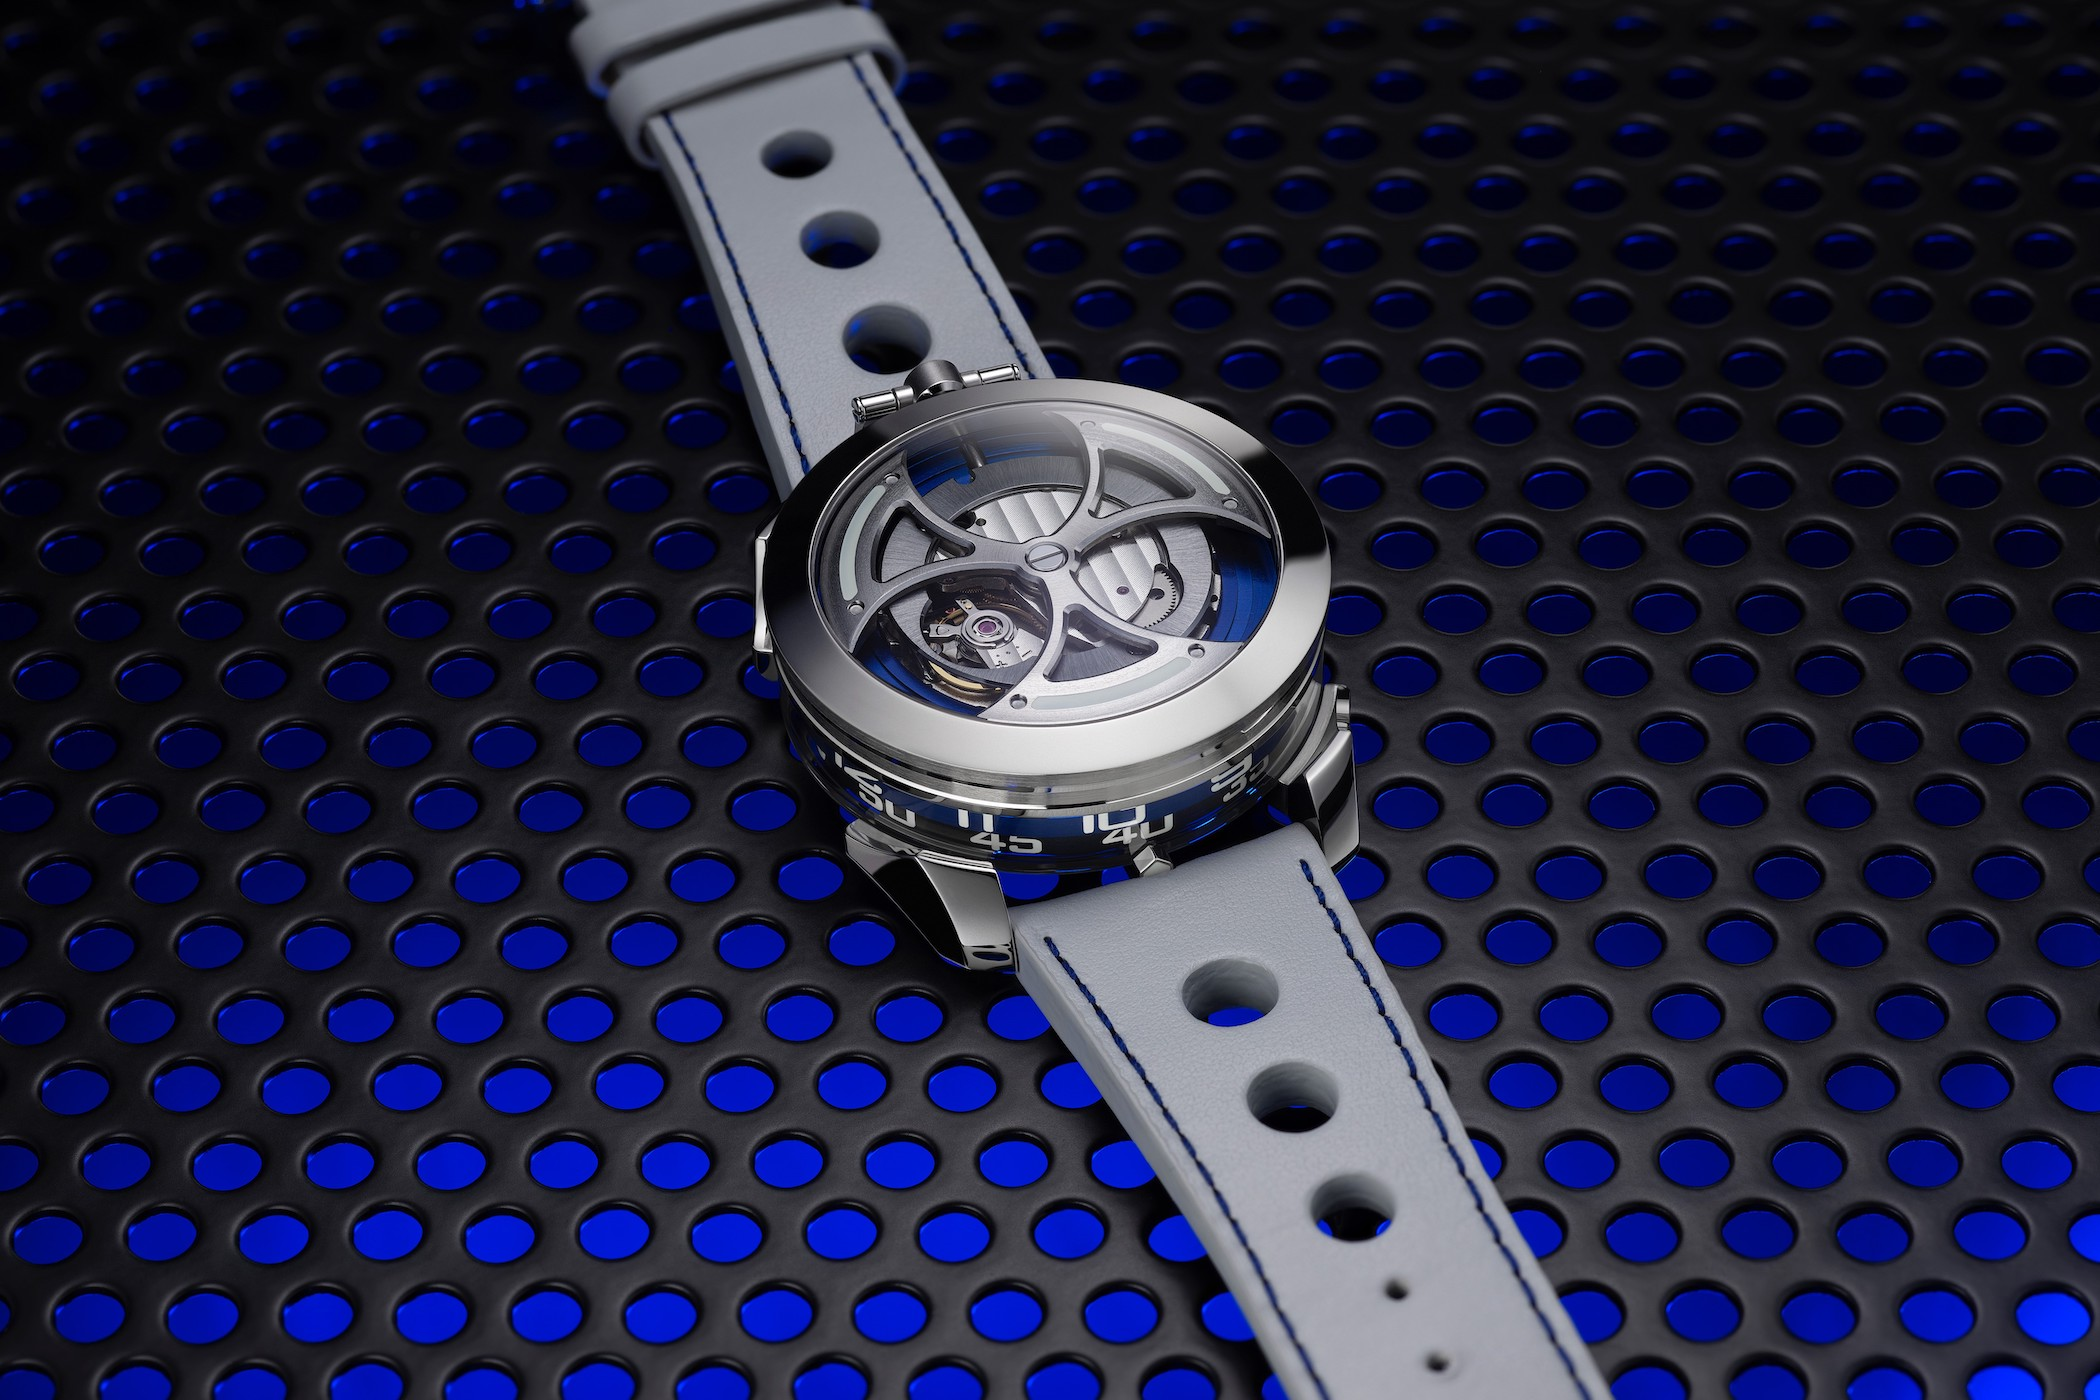 News - The M.A.D. EDITION 1, The Accessible Watch By Max Büsser